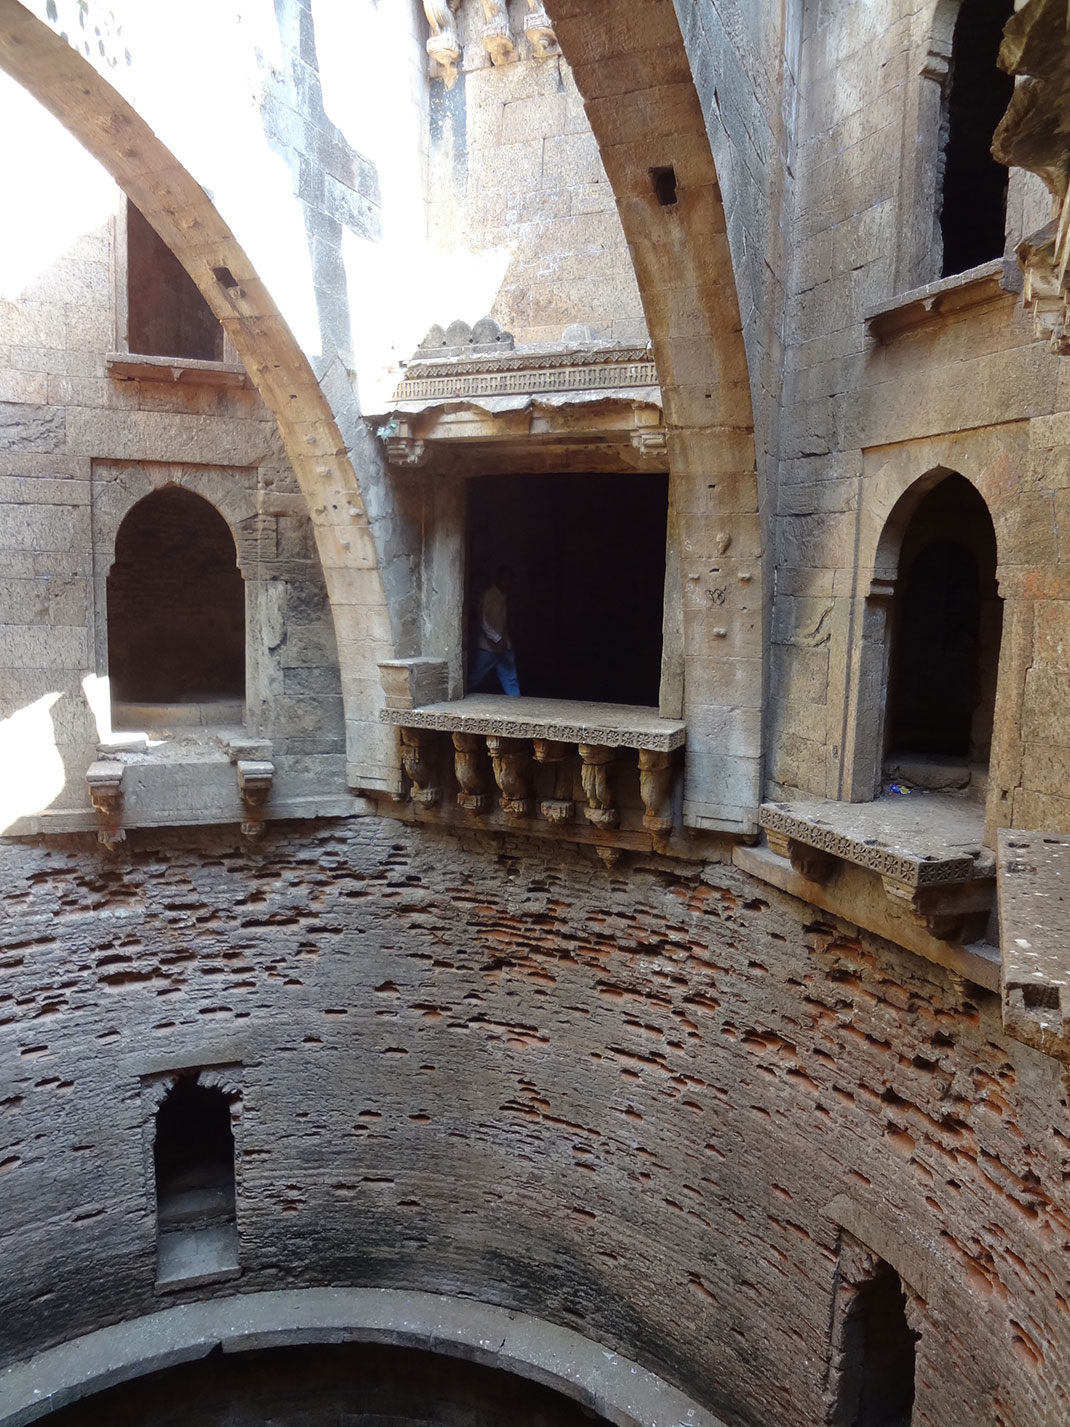 Admire These 2000 Year Old Somptous Buildings In India Destined To Disappear-25